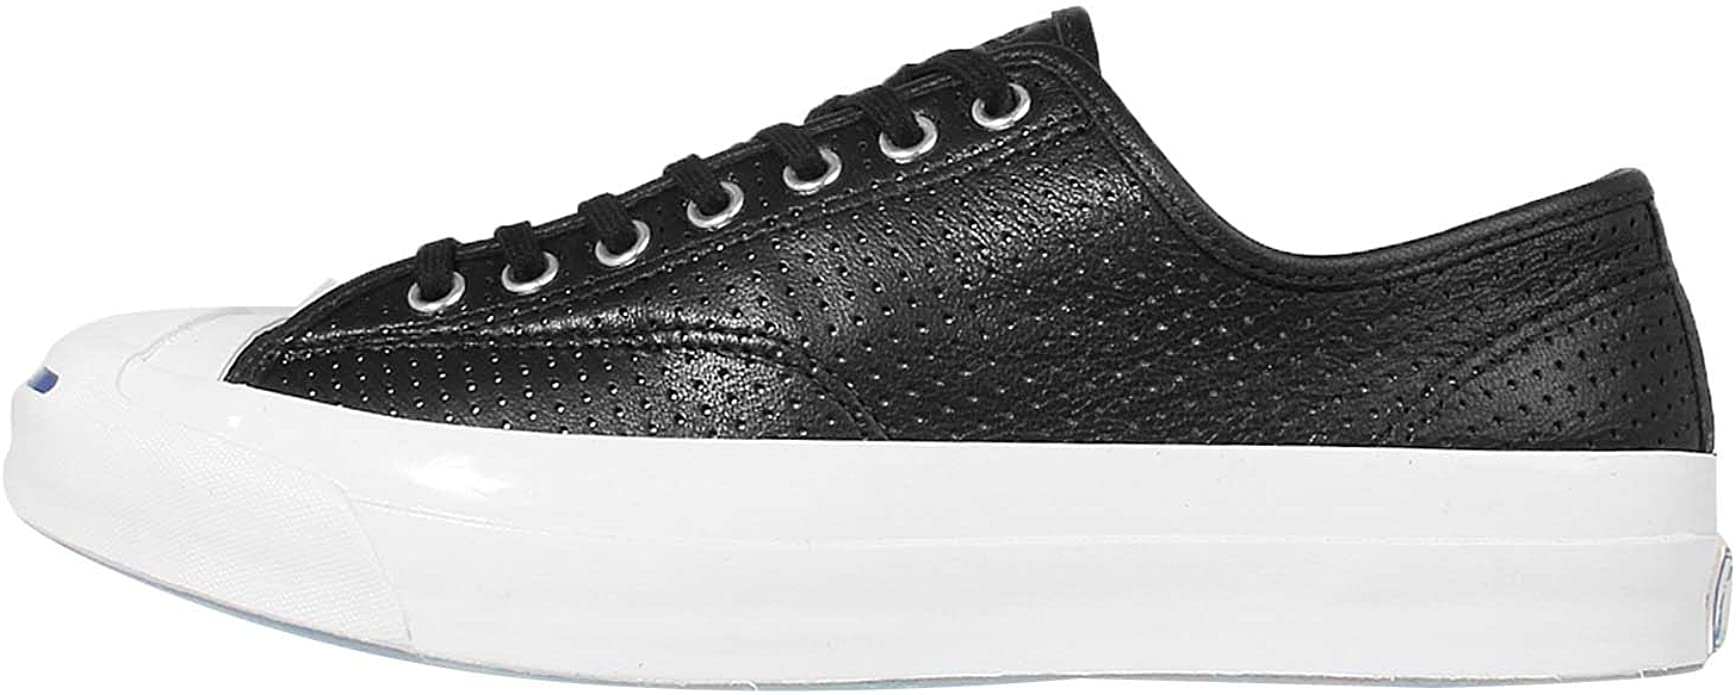 converse jack purcell signature